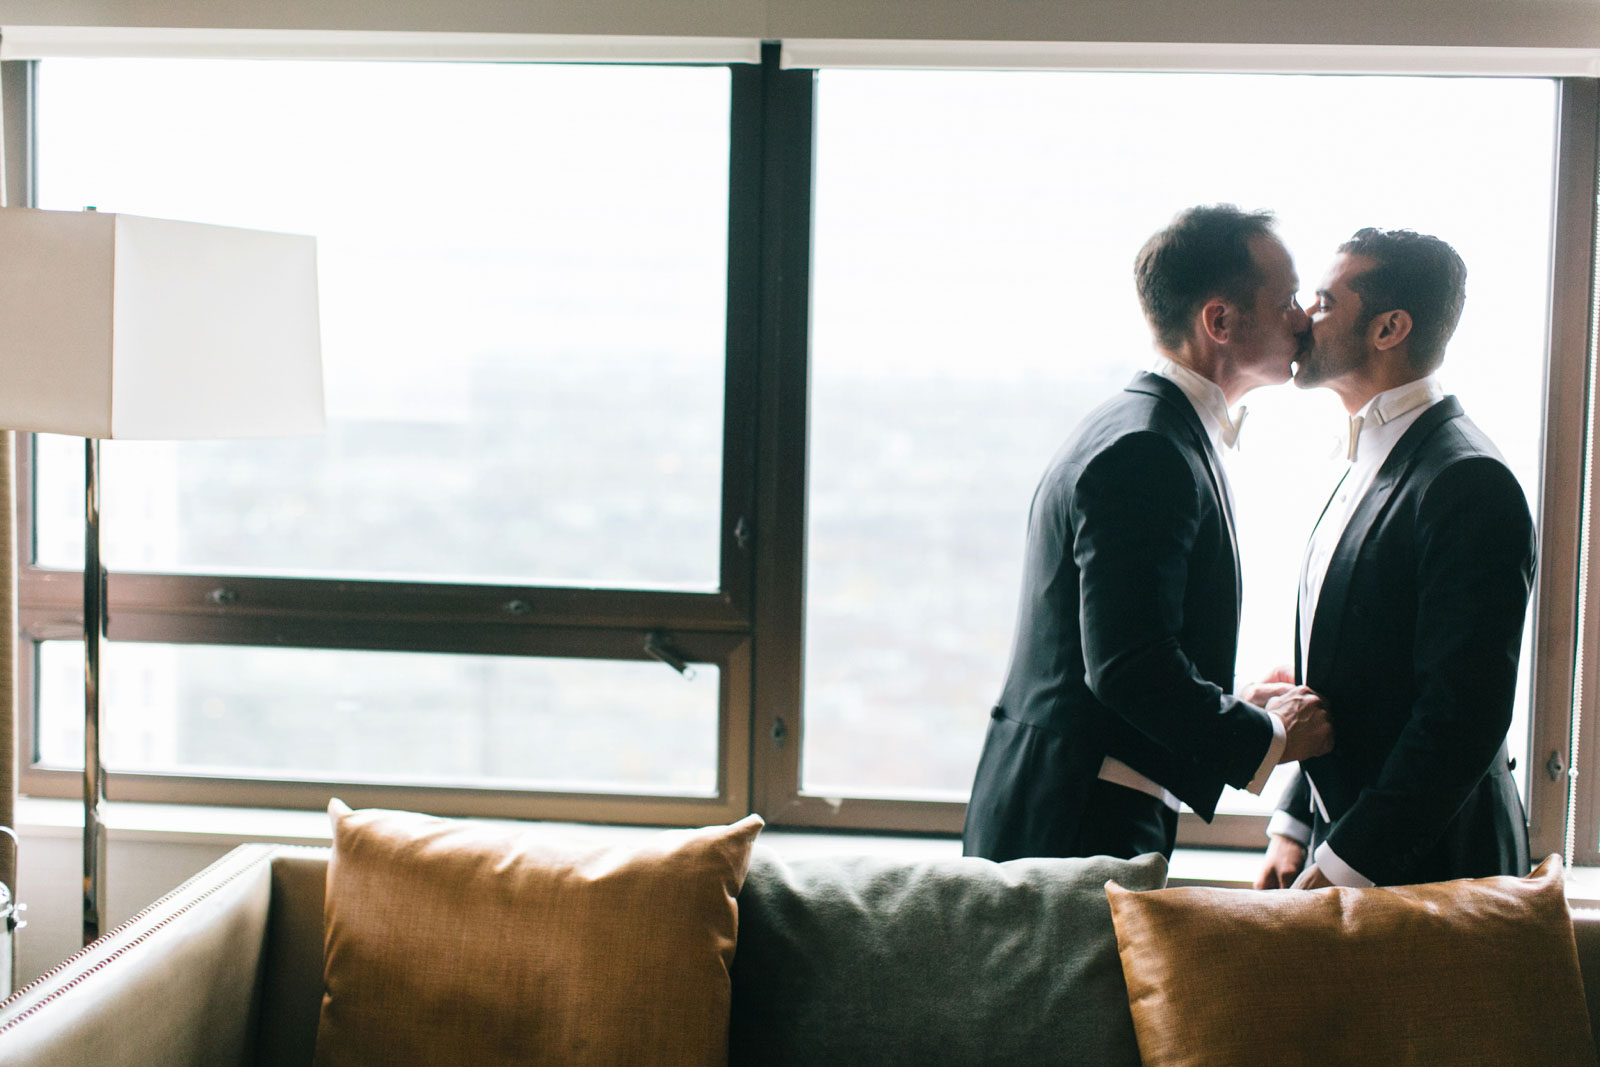 Grooms share a kiss in front of window in getting ready suite before the ceremony